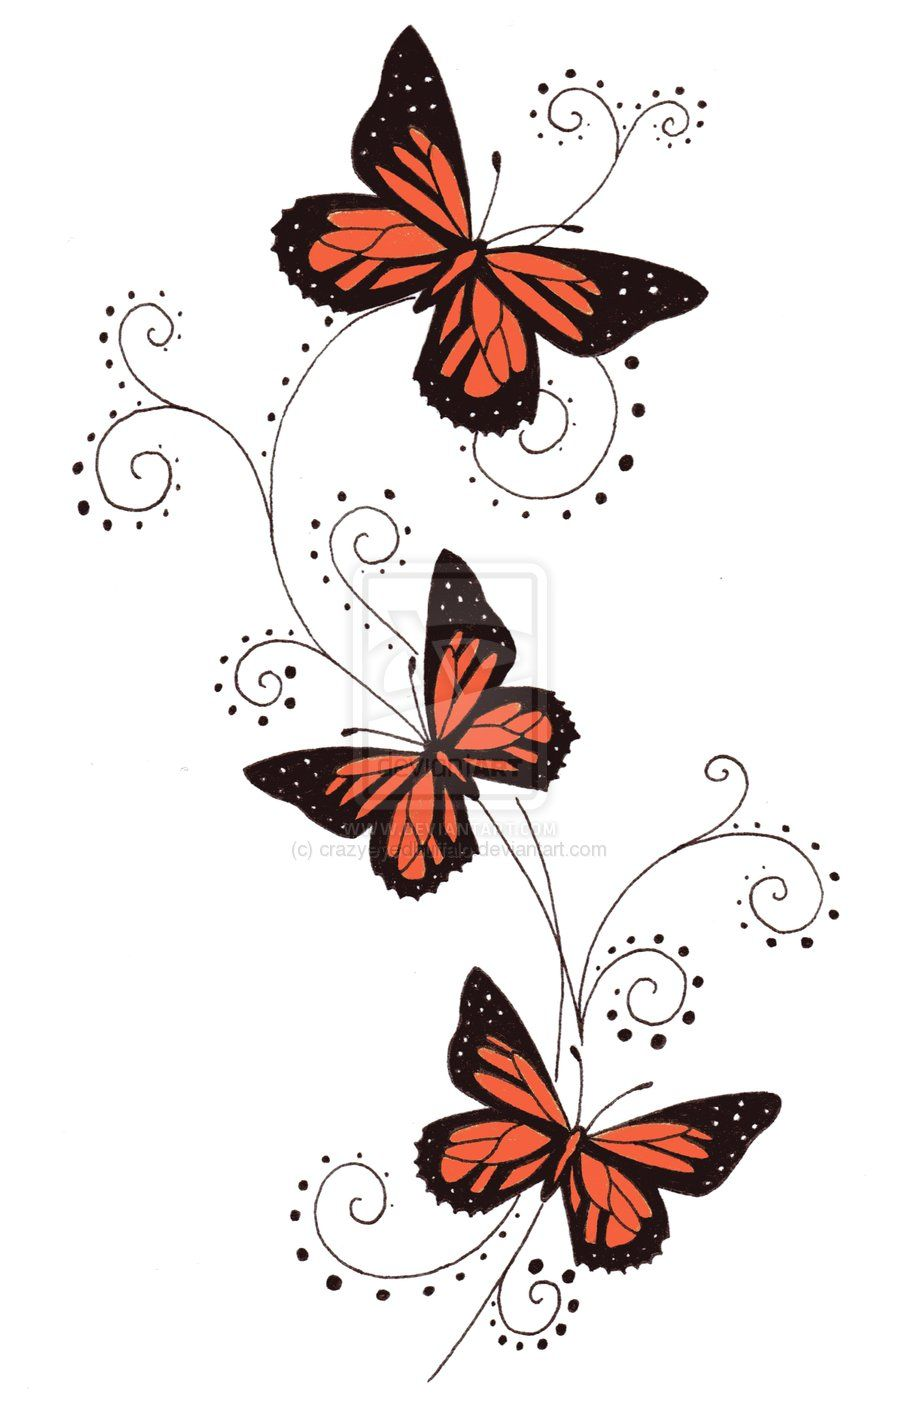 butterfly tattoos butterfly tattoo designs free download tattoo 1912 tribal butterfly. Black Bedroom Furniture Sets. Home Design Ideas